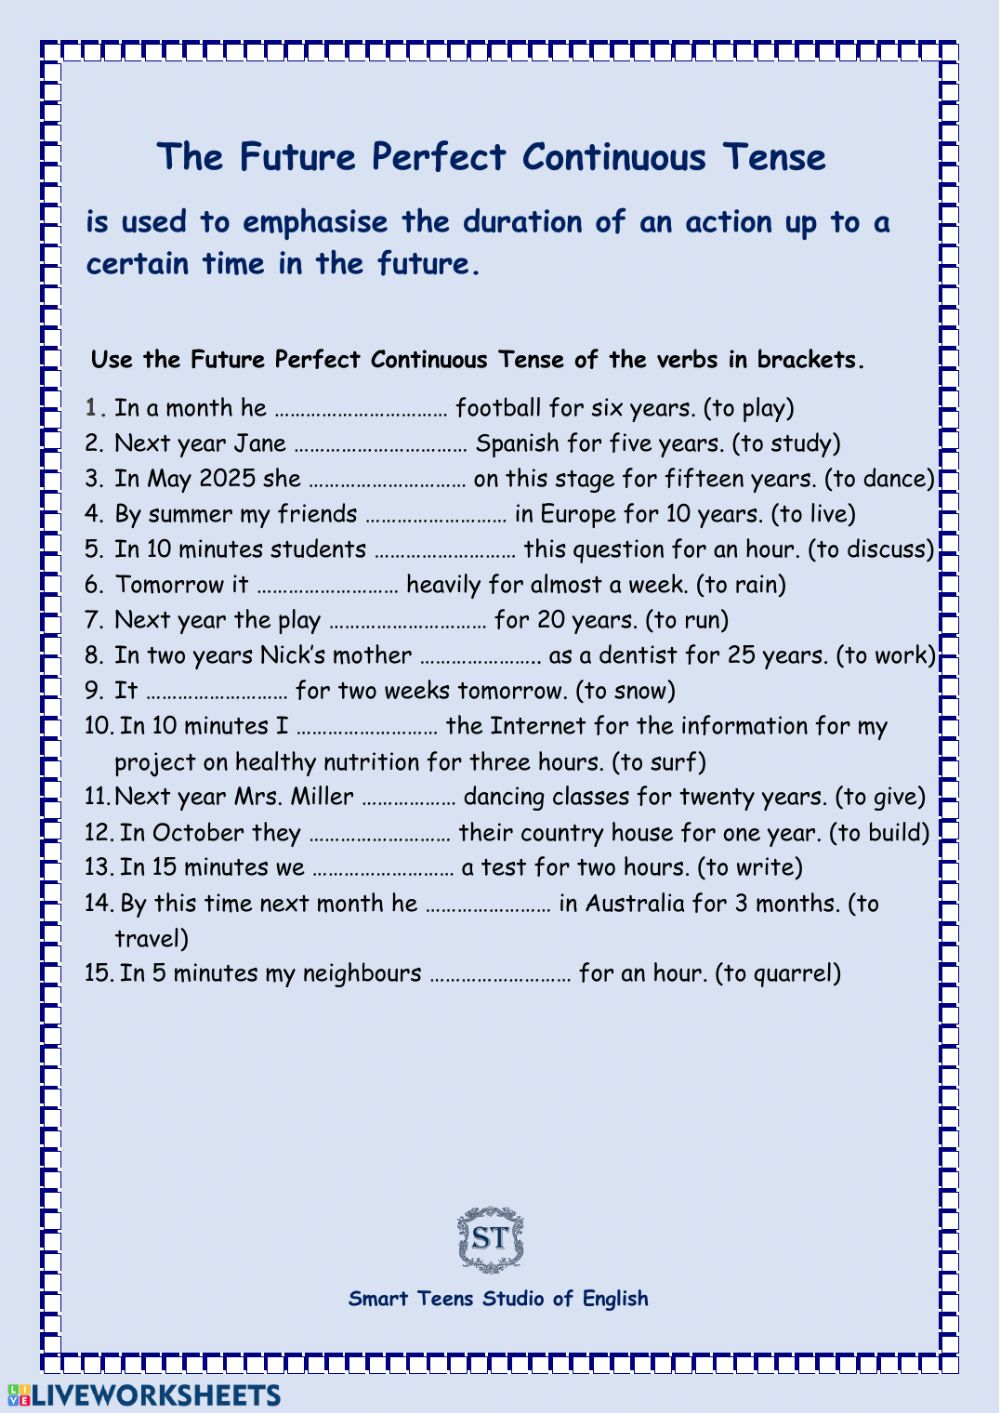 medium resolution of The Future Perfect Continuous Tense worksheet